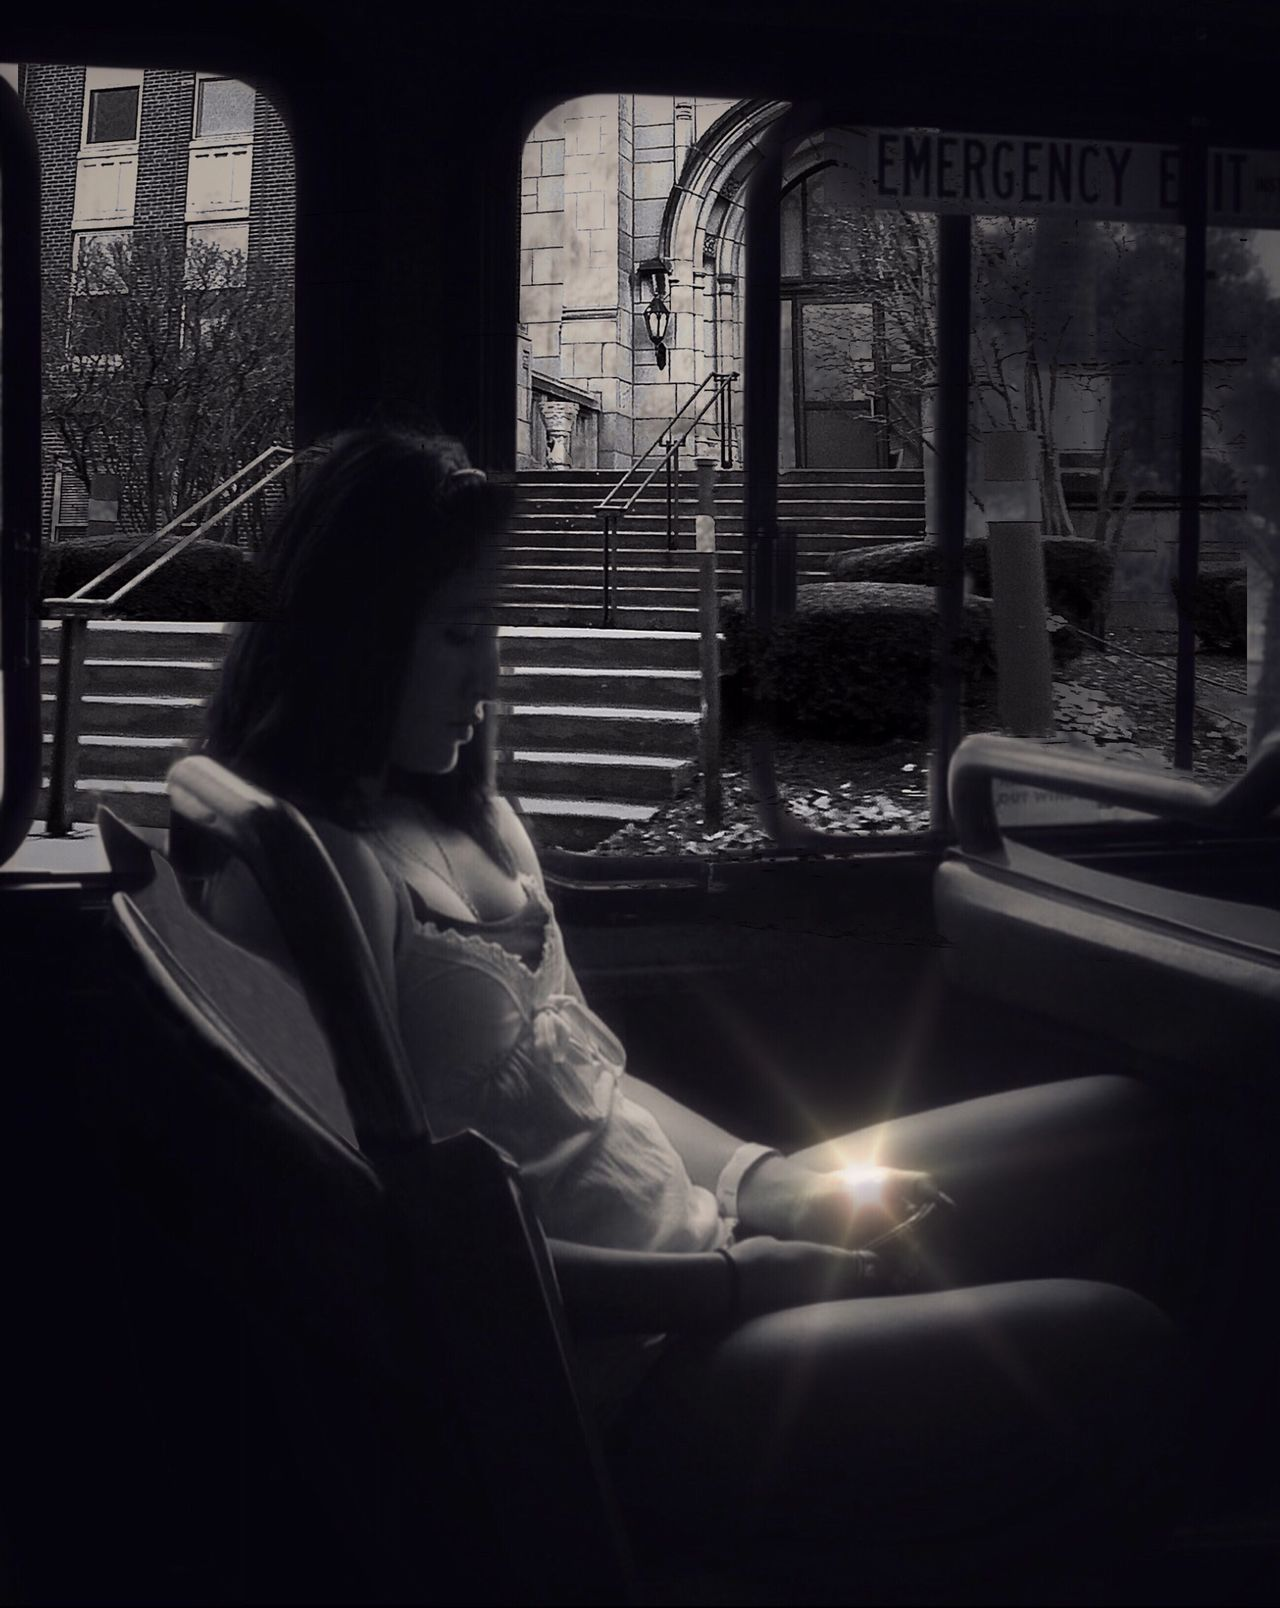 Embrace Urban Life Sitting Window One Person Real People Lifestyles Indoors  Day Women Adult City Bus Downtown Looking Down Light Reflection The Week On Eyem Exceptional Photographs Black & White Blackandwhite Photography Eyeam_bestshot EyeEm Masterclass Fine Art Photography Traveling Home For The Holidays